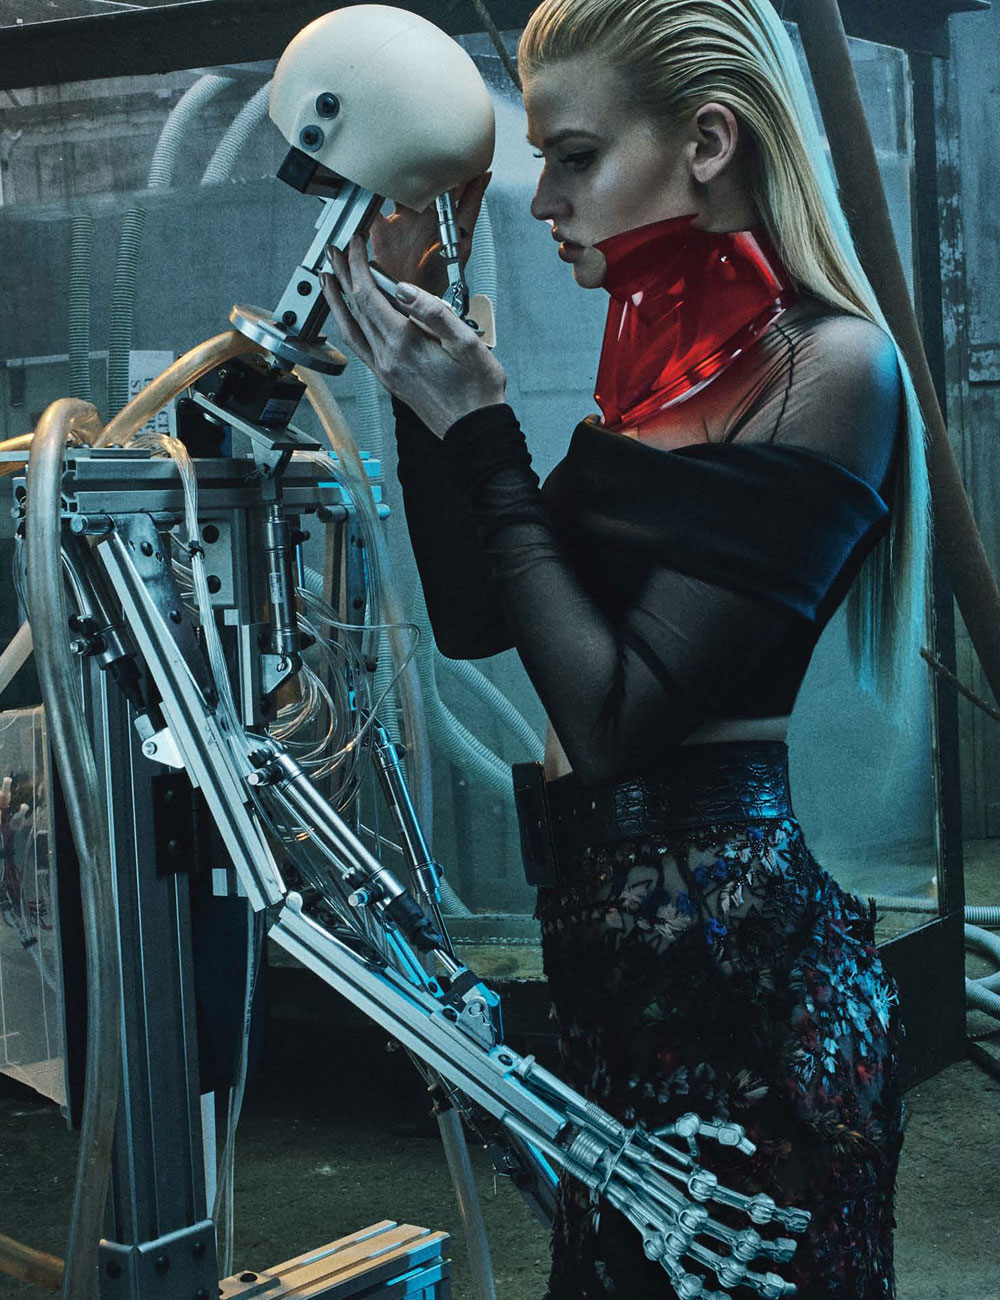 Love The Stone Tile For A Patio: Lara Stone In 'Love Machine' By Steven Klein For W